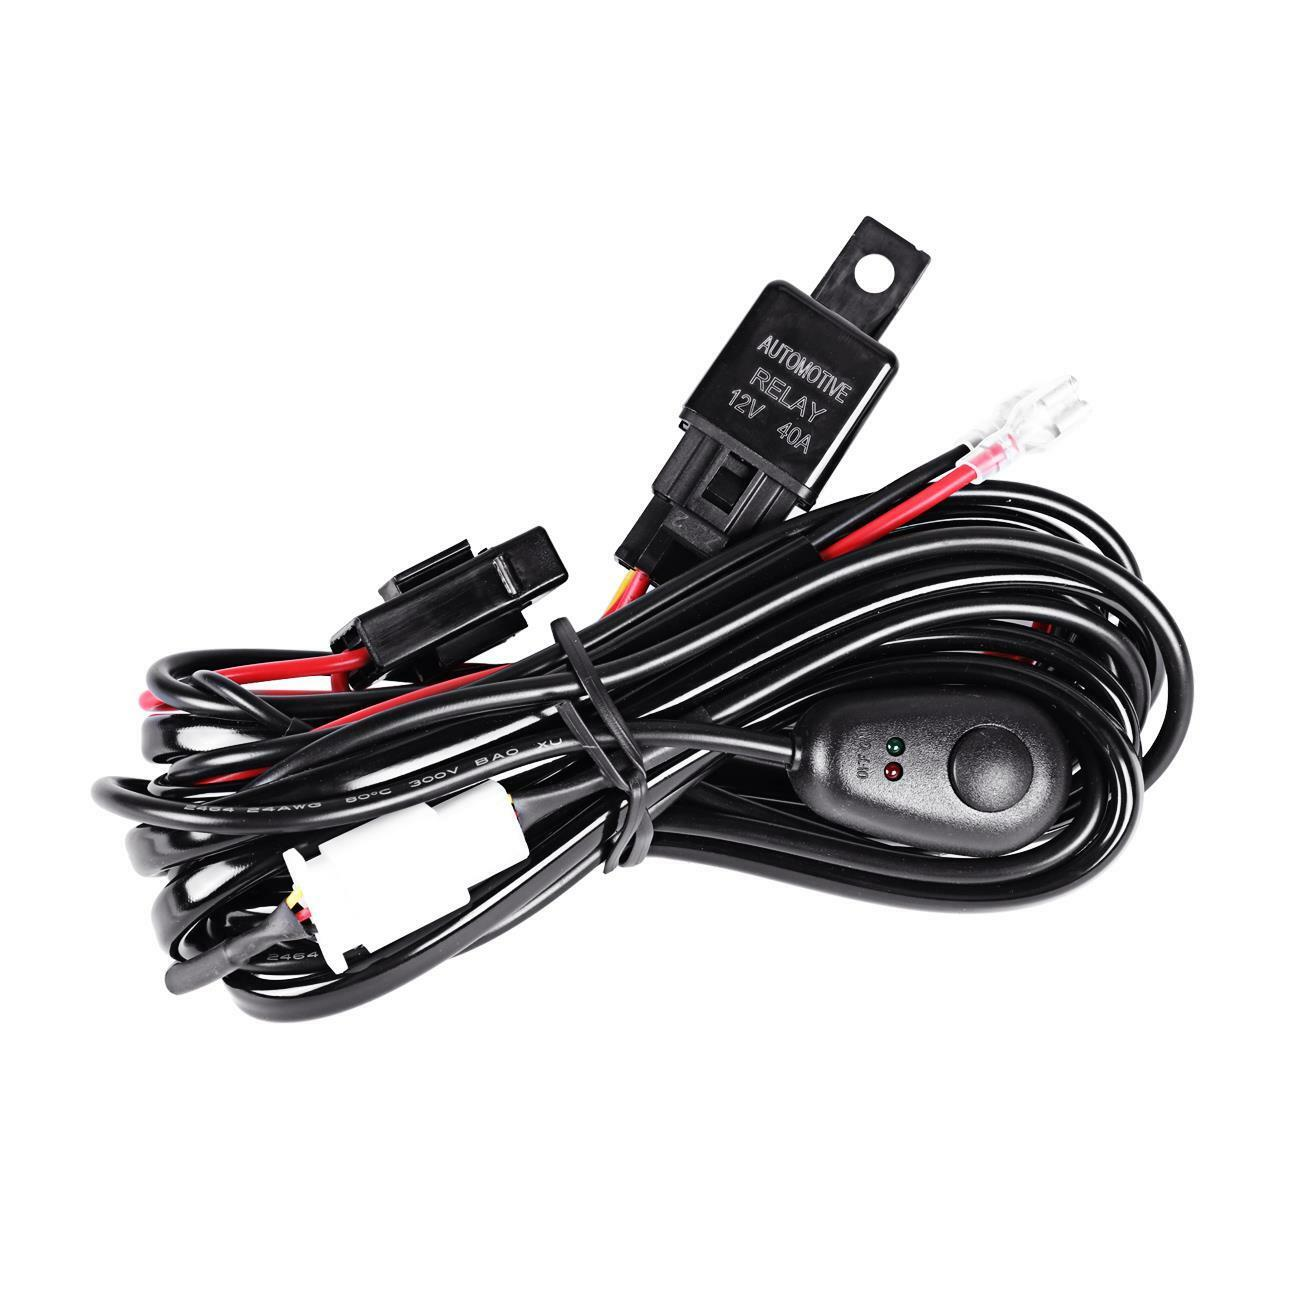 Led Light Bar Wiring Loom Solutions Hid Driving Harness Kit 40a Switch Relay 12v Ebay Offroad Fog Work Fuse